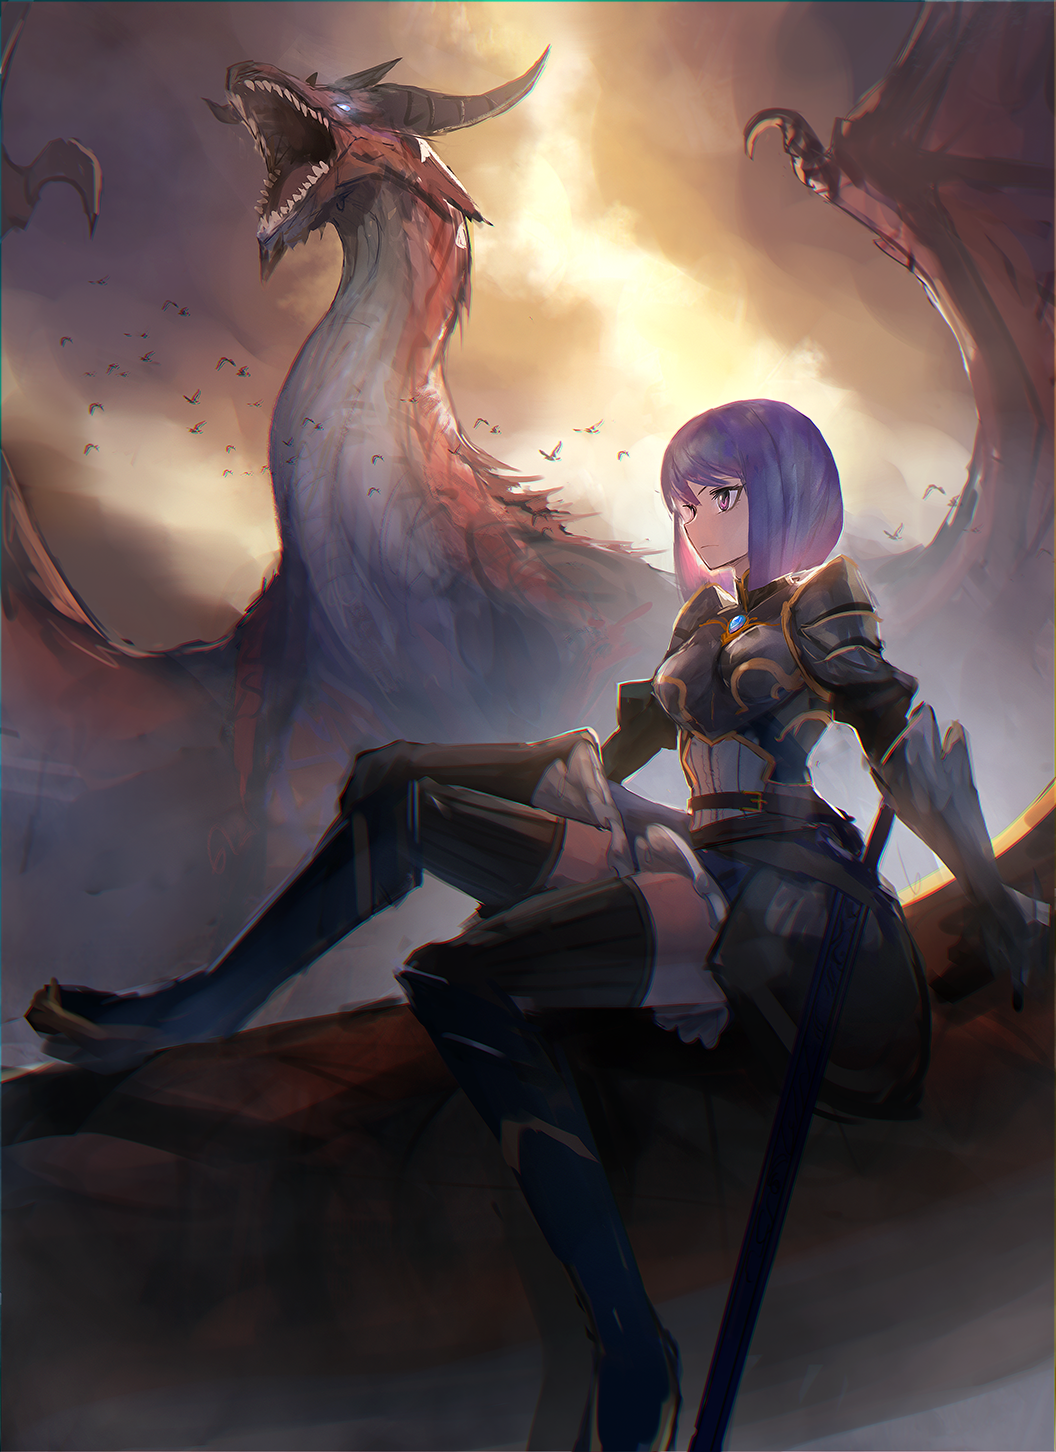 1girl armor backlighting bird bob_cut breastplate dark dragon dress fantasy flock frown gauntlets hand_on_own_knee highres original petticoat profile purple_hair red_eyes roaring serious short_hair shoulder_armor sitting sky solo spaulders sword thigh-highs volvox819 weapon zettai_ryouiki